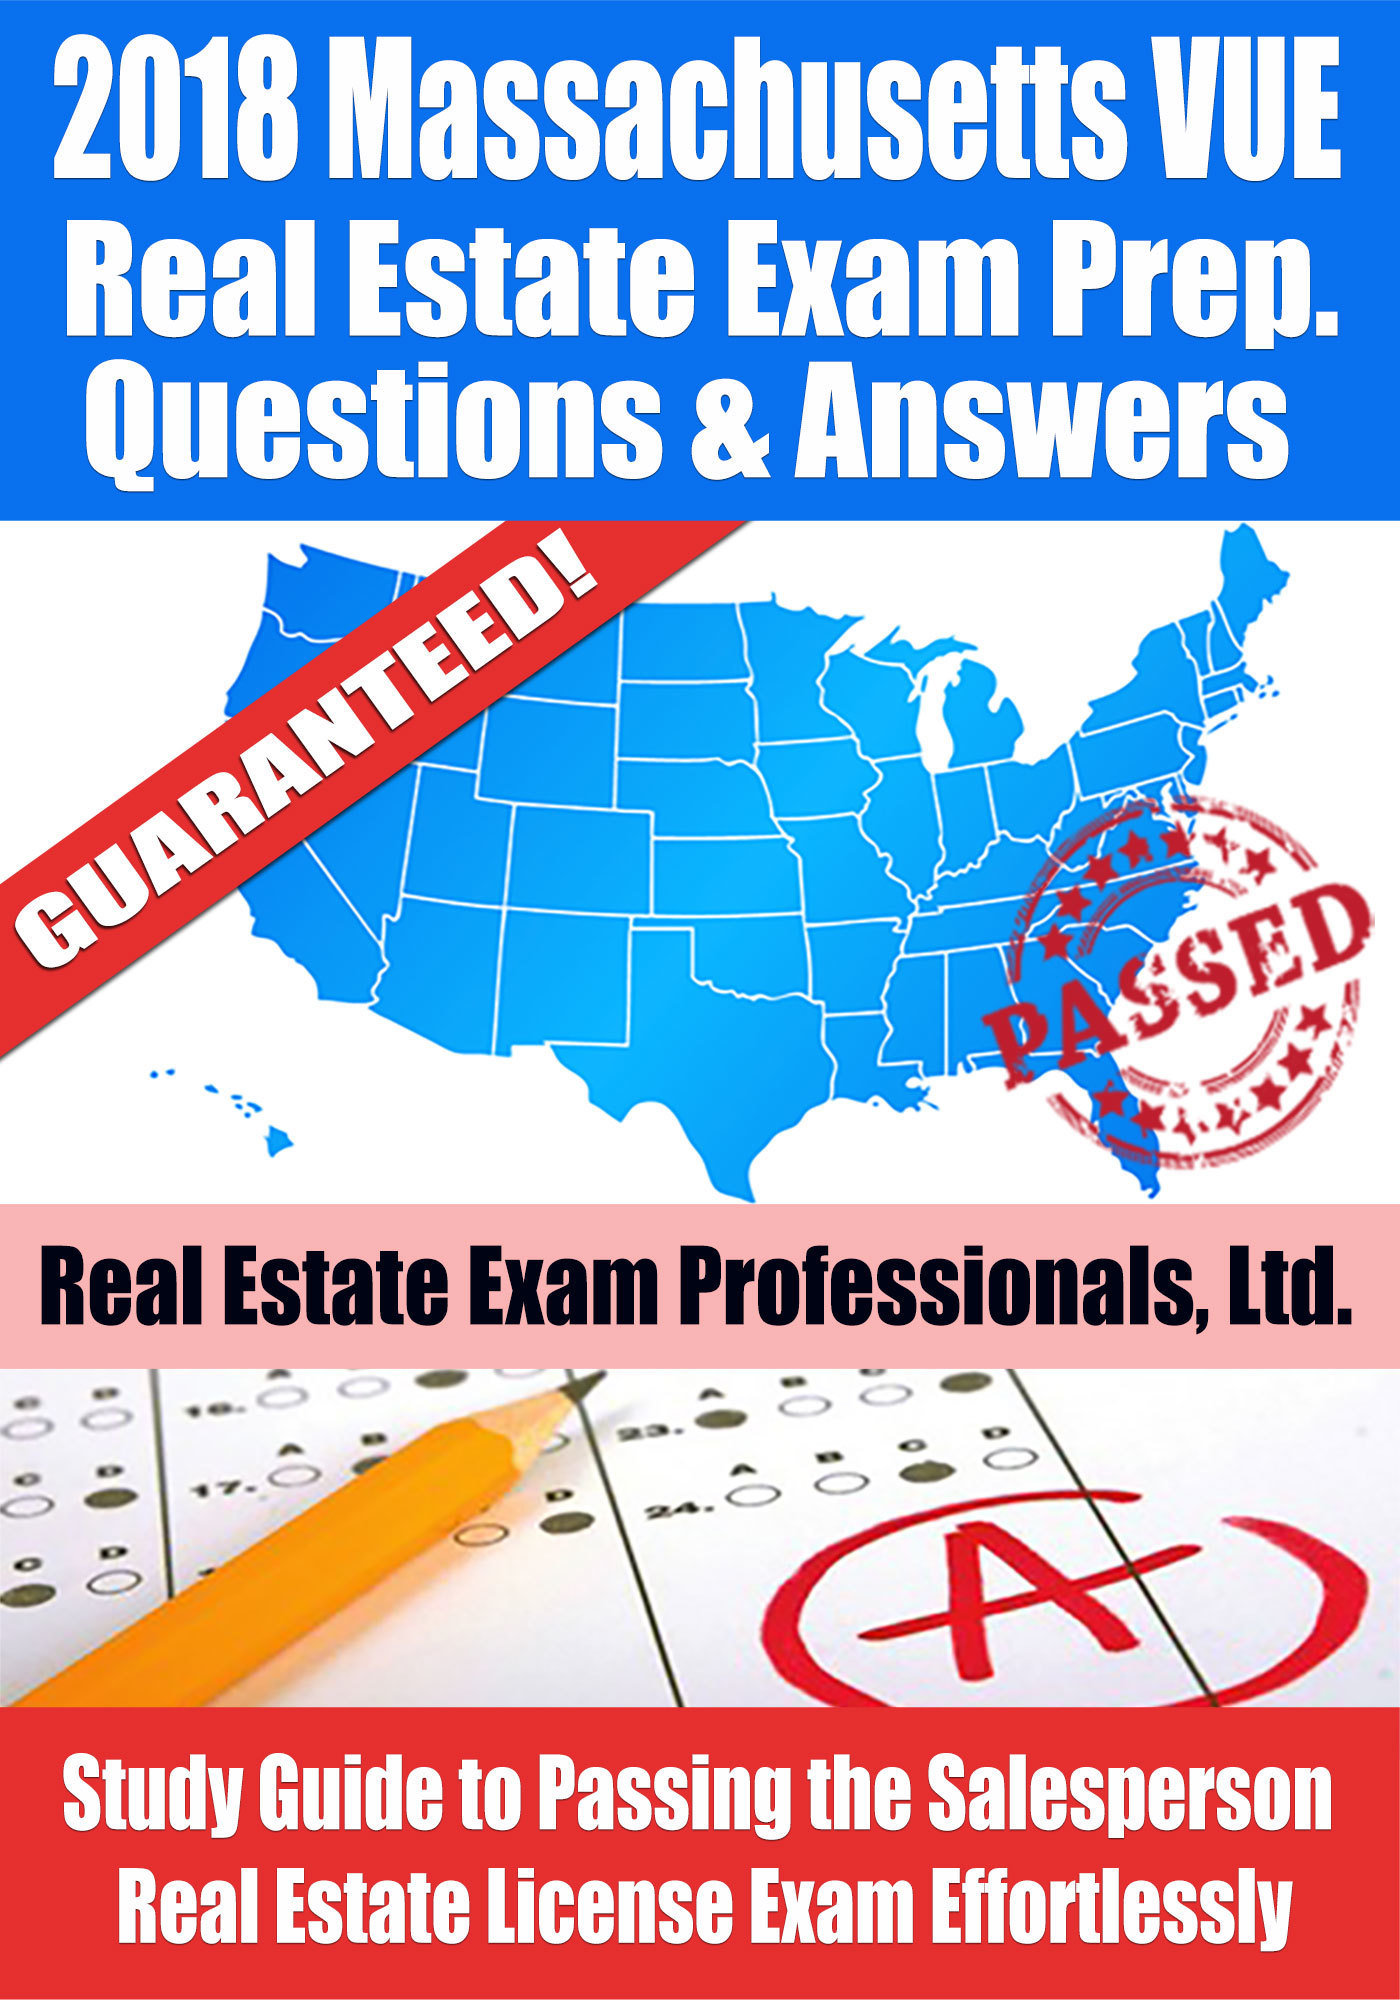 2018 Massachusetts VUE Real Estate Exam Prep Questions, Answers  Explanations: Study Guide to Passing the Salesperson Real Estate License Exam Effortlessly